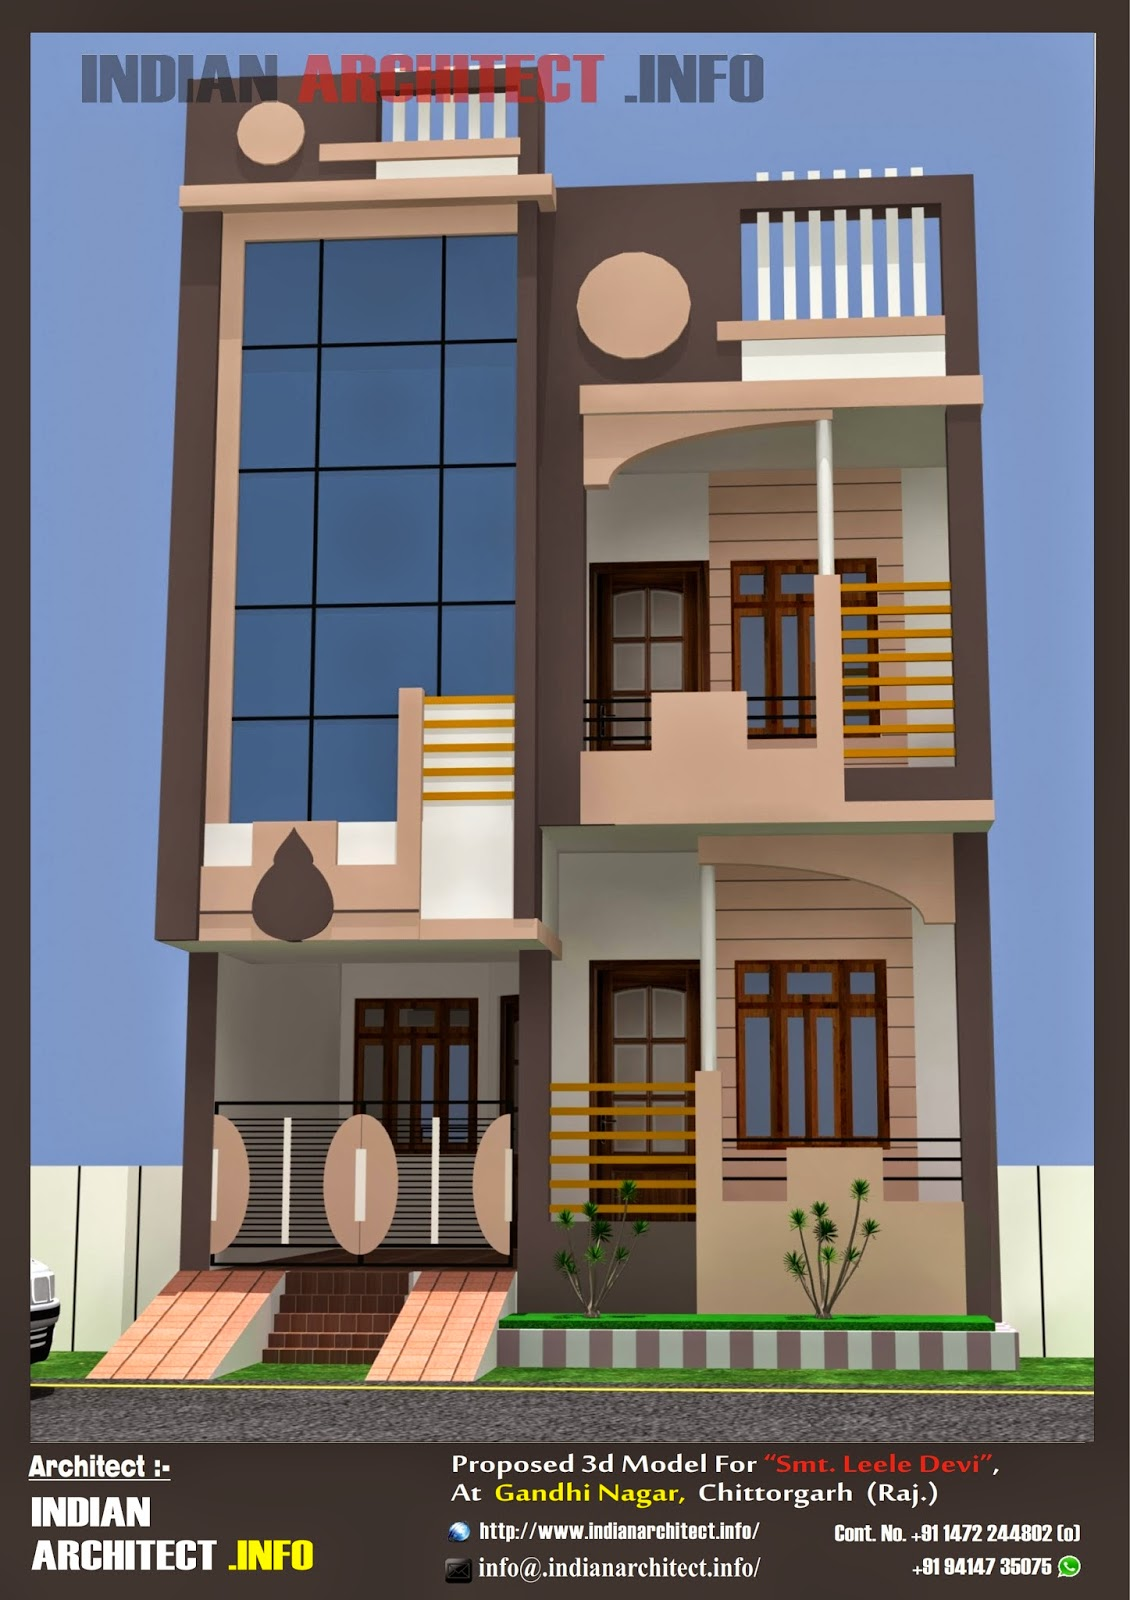 Smt leela devi house 20 39 x 50 39 1000 sqft floor plan and for 3d house plans in 1000 sq ft